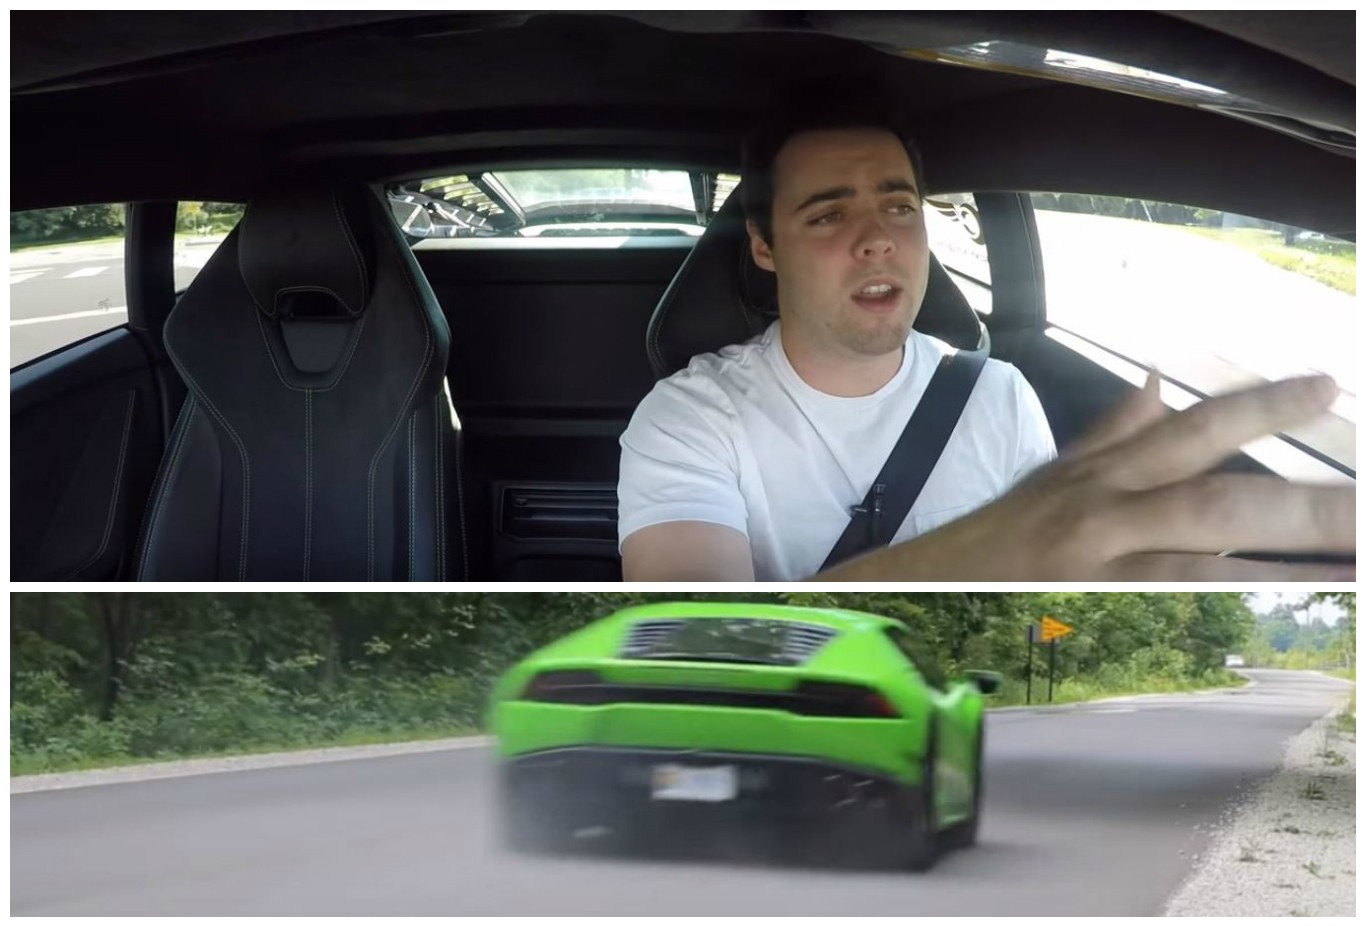 Lamborghini Huracan Ownership Cost Shared By 22 Year Old